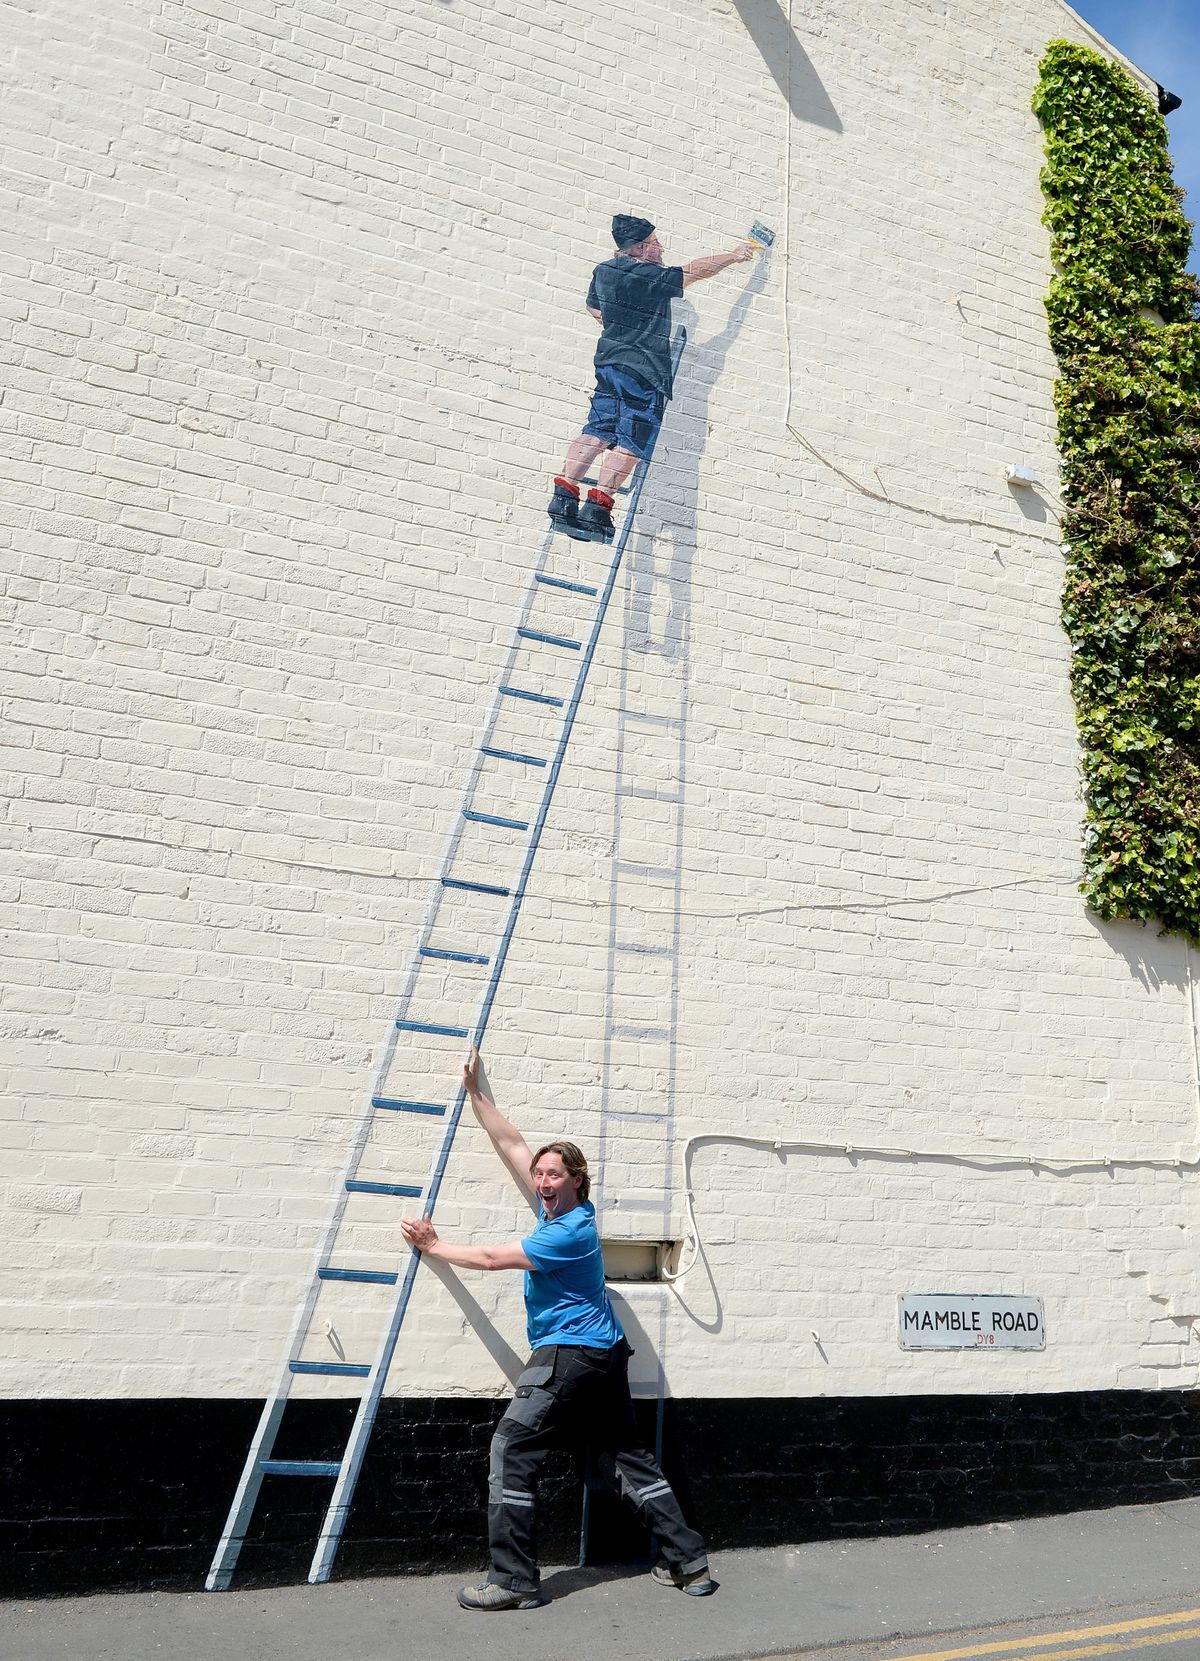 The unusual mural at Katie Fitzgerald's featuring landlord Eddy Morton painting the wall